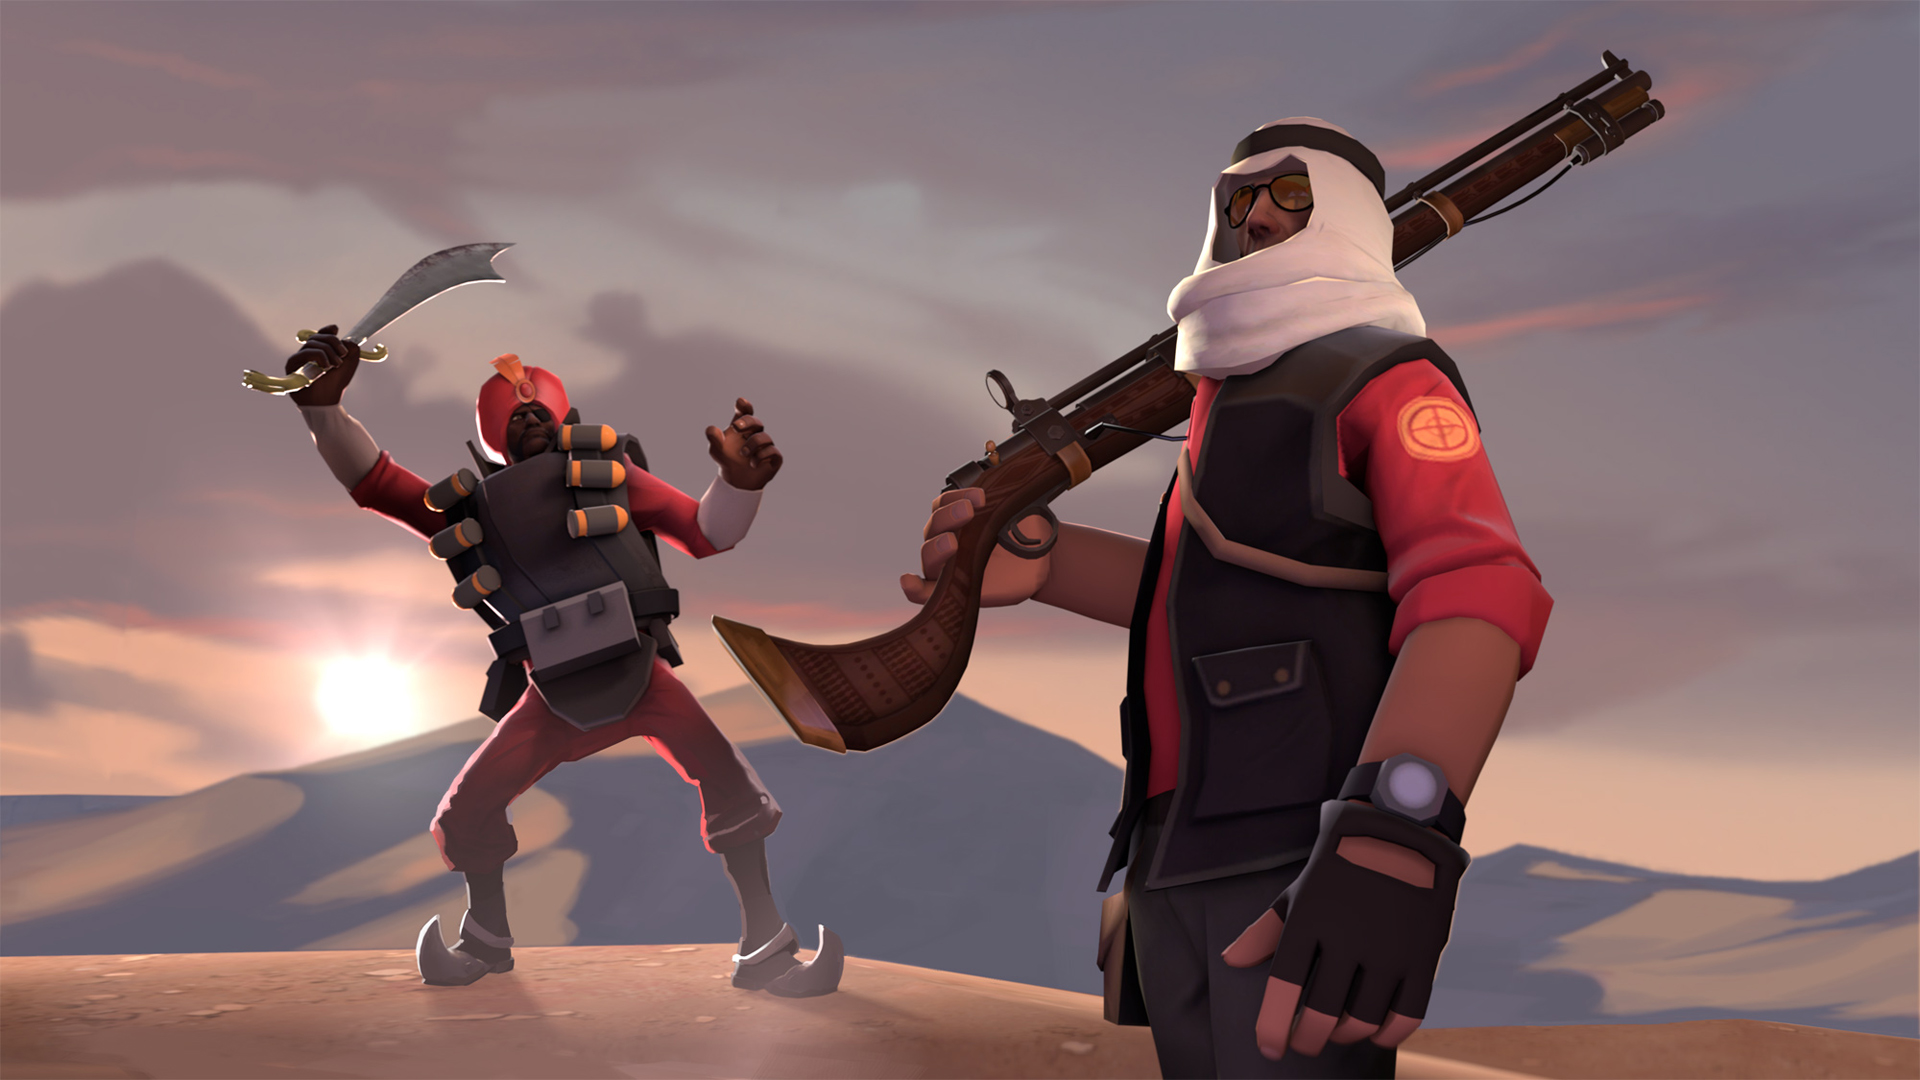 team fortress team fortress - photo #24